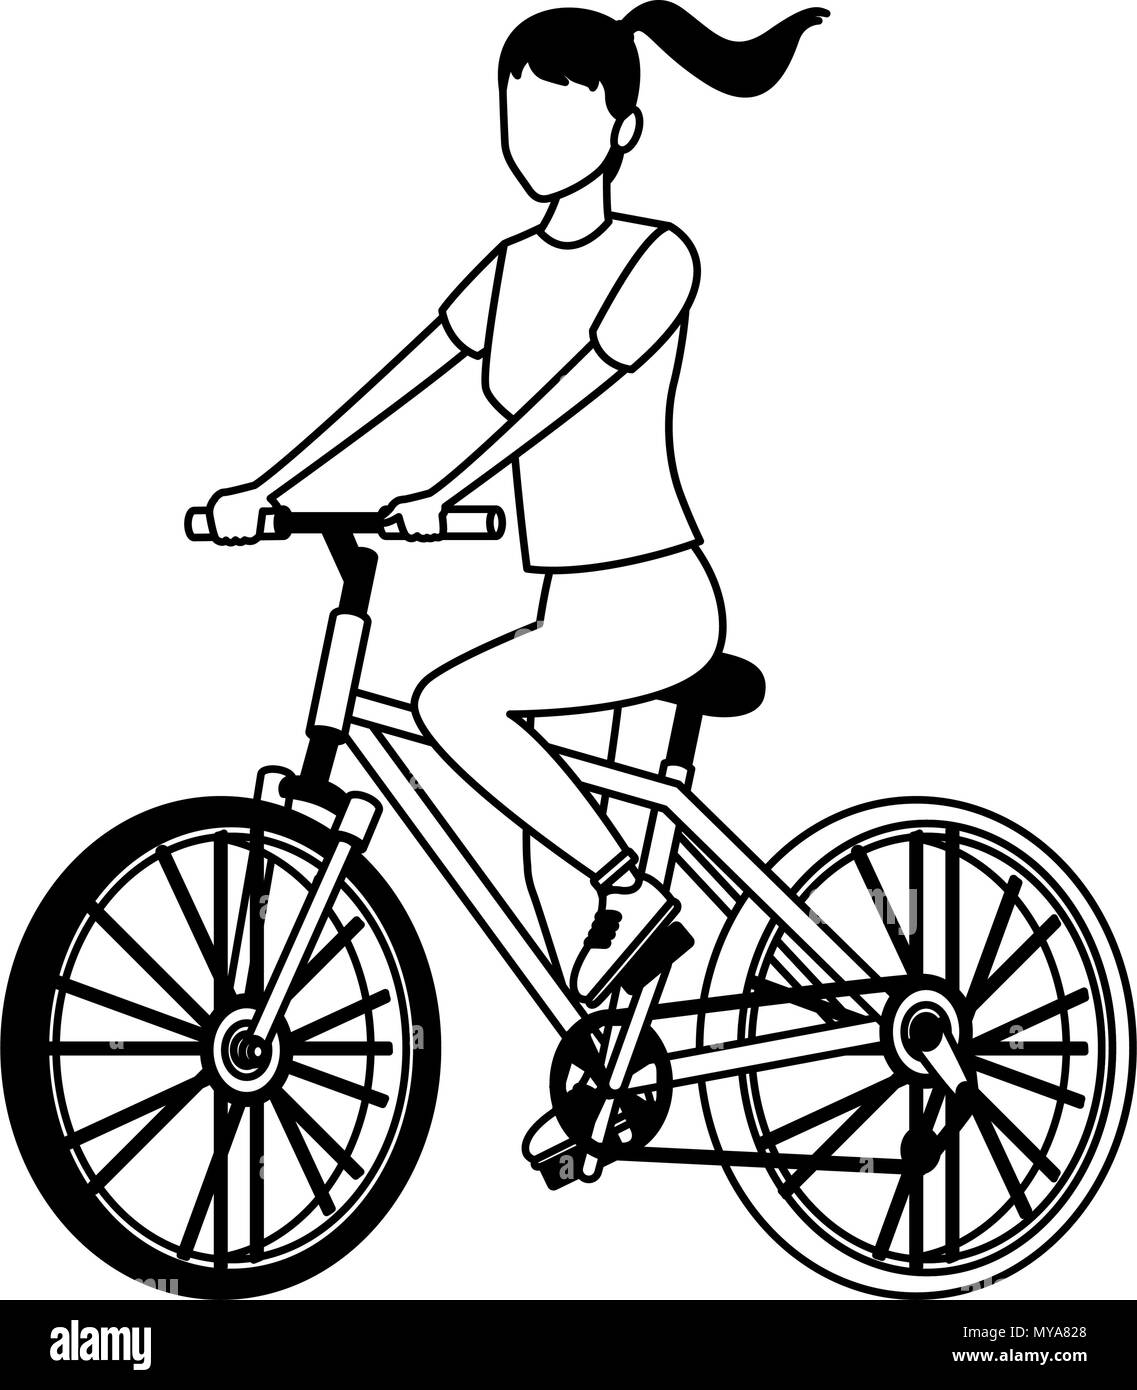 woman with bike black and white stock photos images alamy Denver's Choppers woman with bicycle in black and white stock image